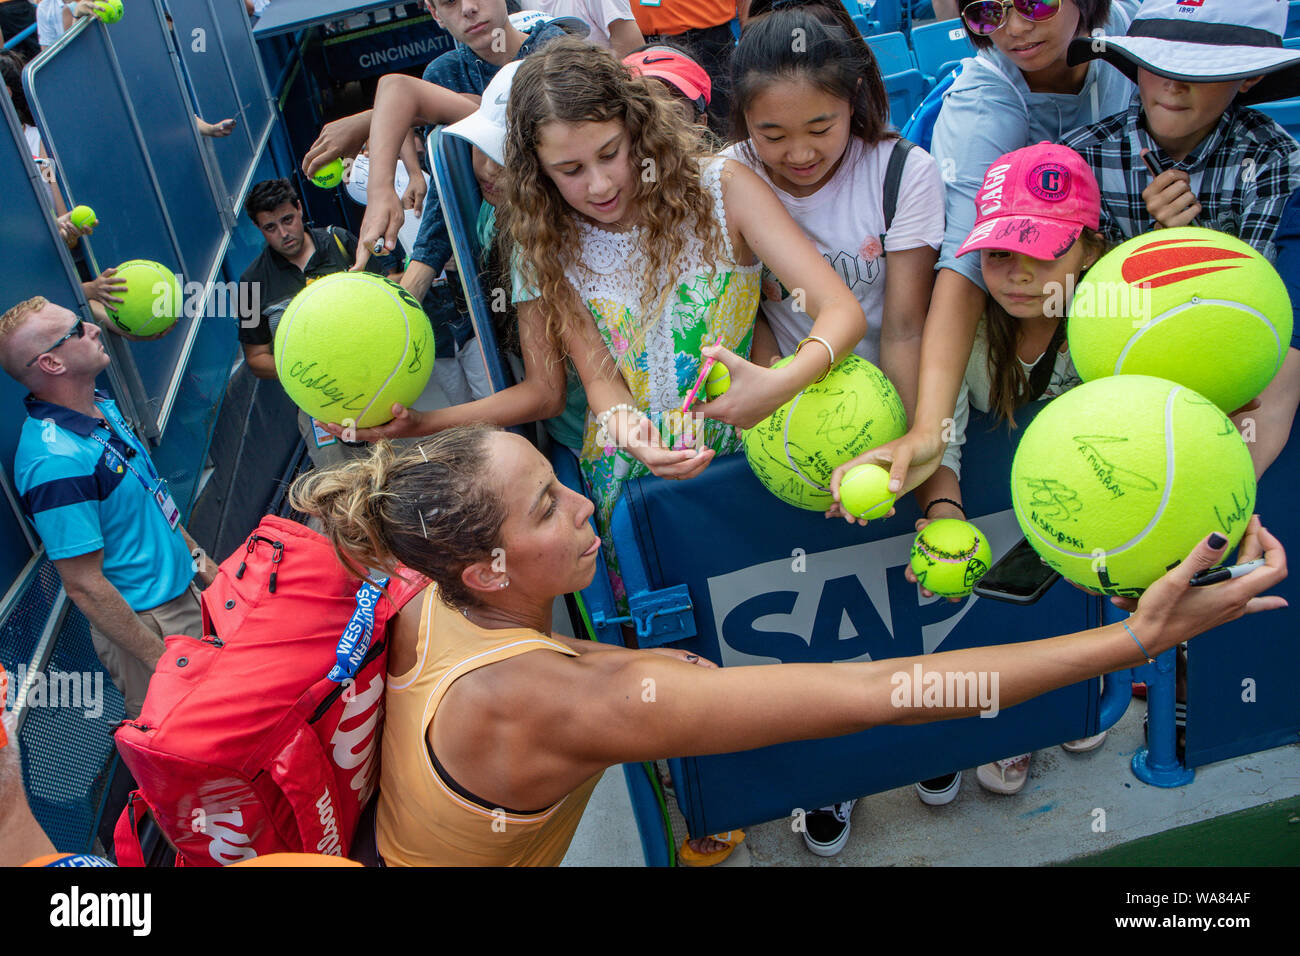 August 18, 2019, Mason, Ohio, USA: Madison Keys (USA) signs autographs for fans after winning the Women's Final of the Western and Southern Open at the Lindner Family Tennis Center, Mason, Oh. (Credit Image: © Scott Stuart/ZUMA Wire) Stock Photo